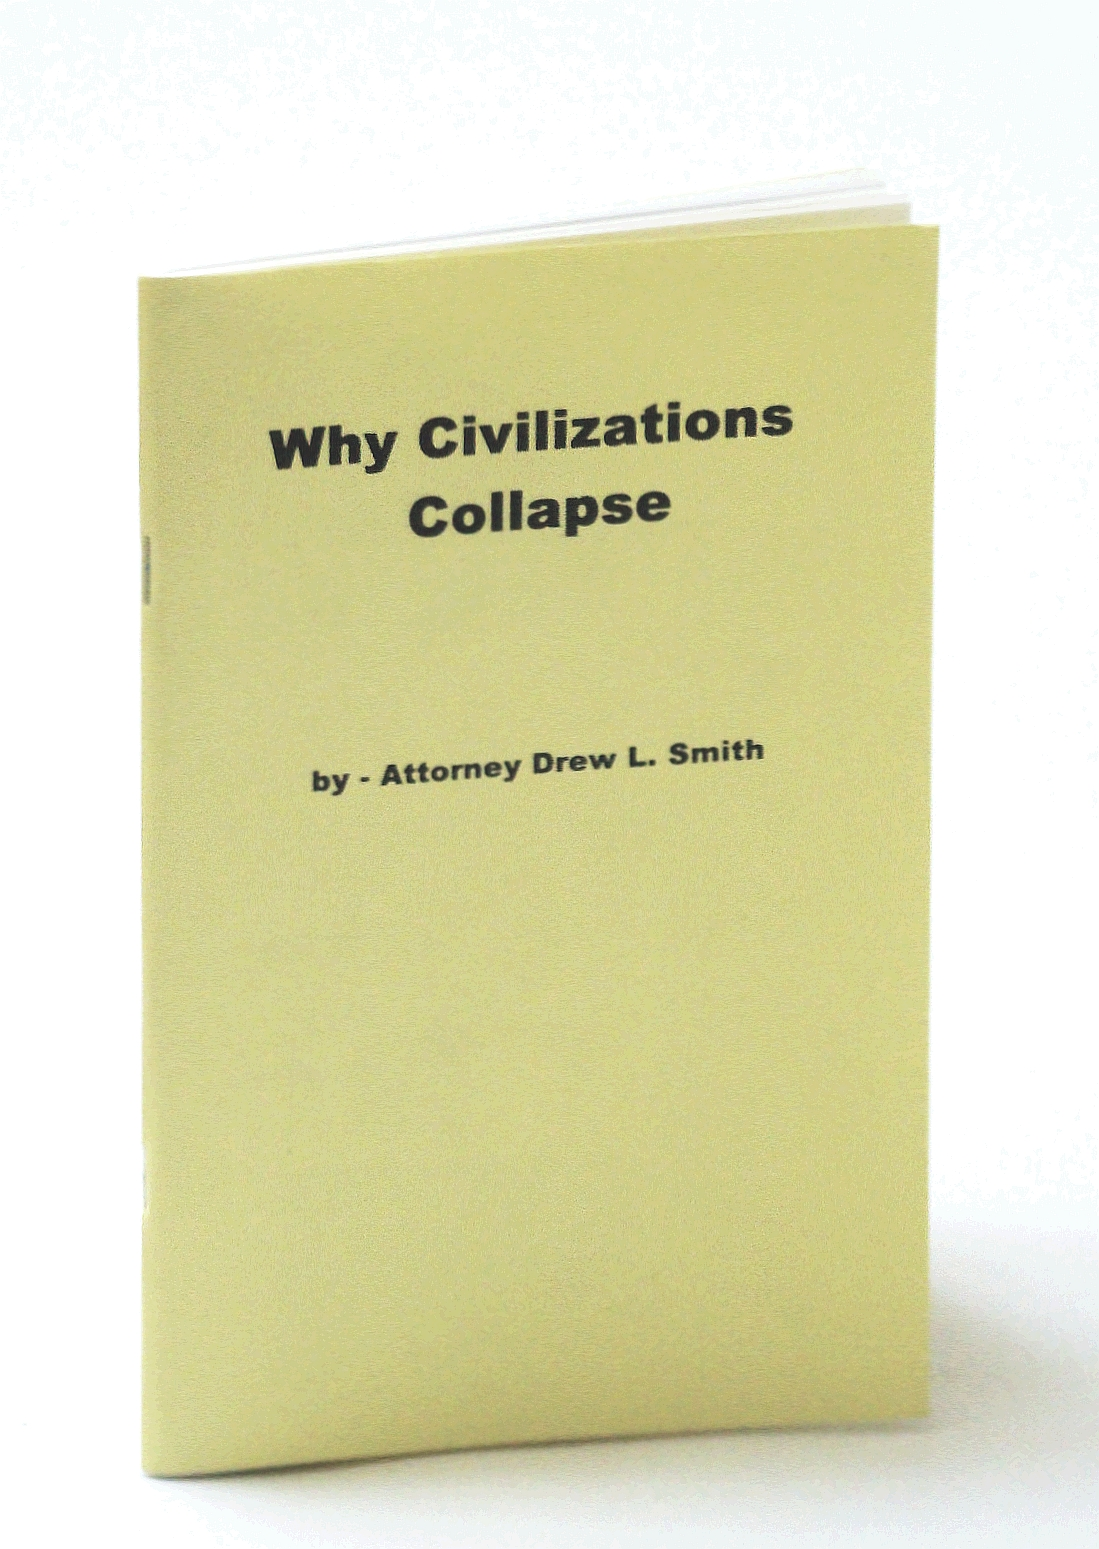 Image for Why Civilizations Collapse; Fields, Dr. E.R. [Introduction]